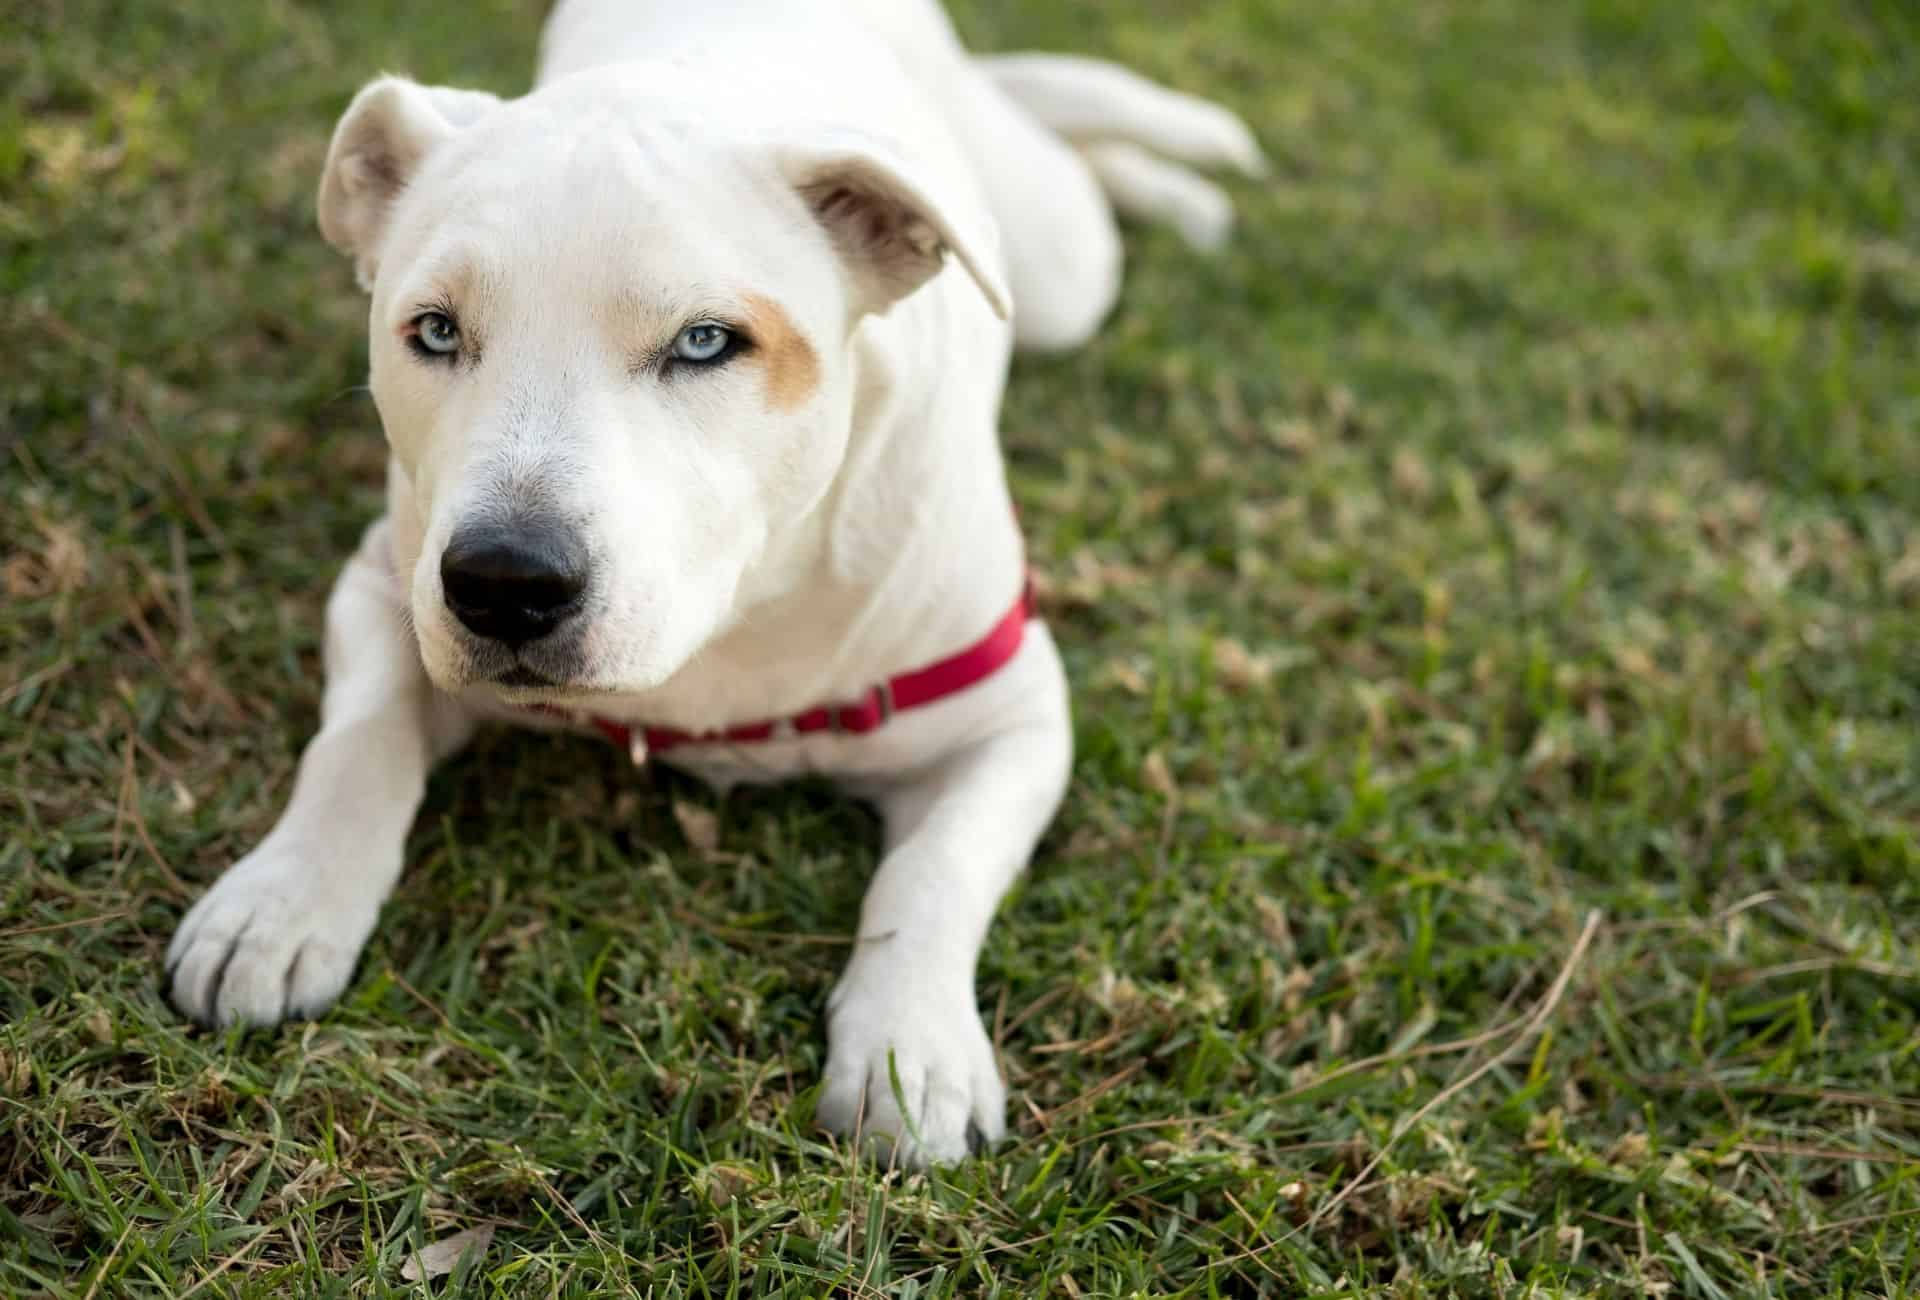 Dog with a white coat and blue eyes laying down on grass.